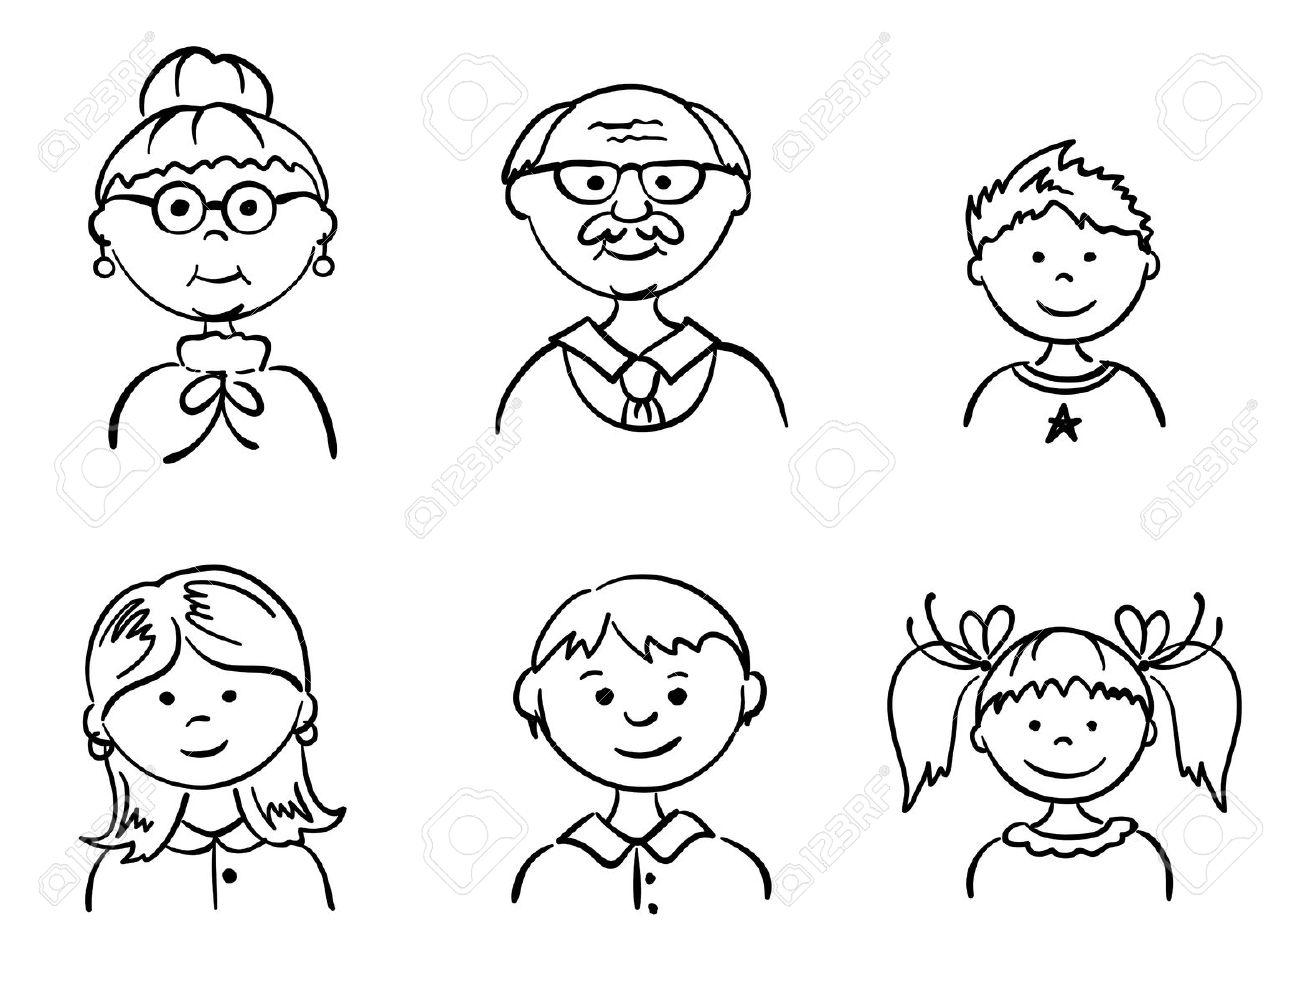 grandparents clipart black and white 2 | Clipart Station